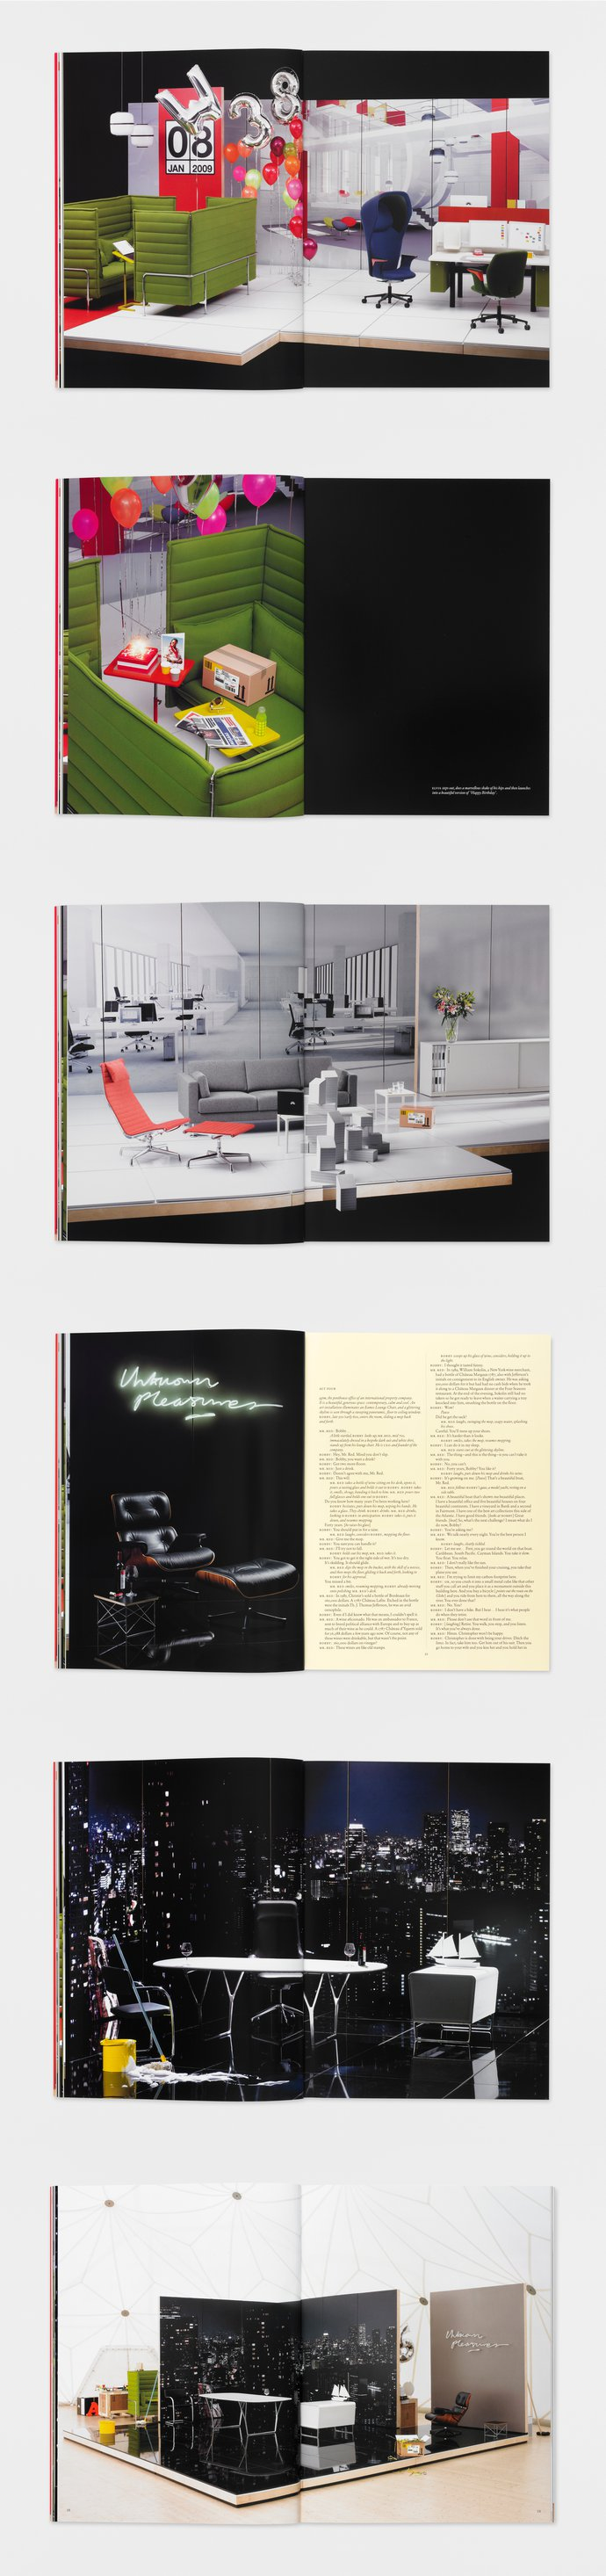 Vitra – Workspirit 11, 2008 (Publication), image 4